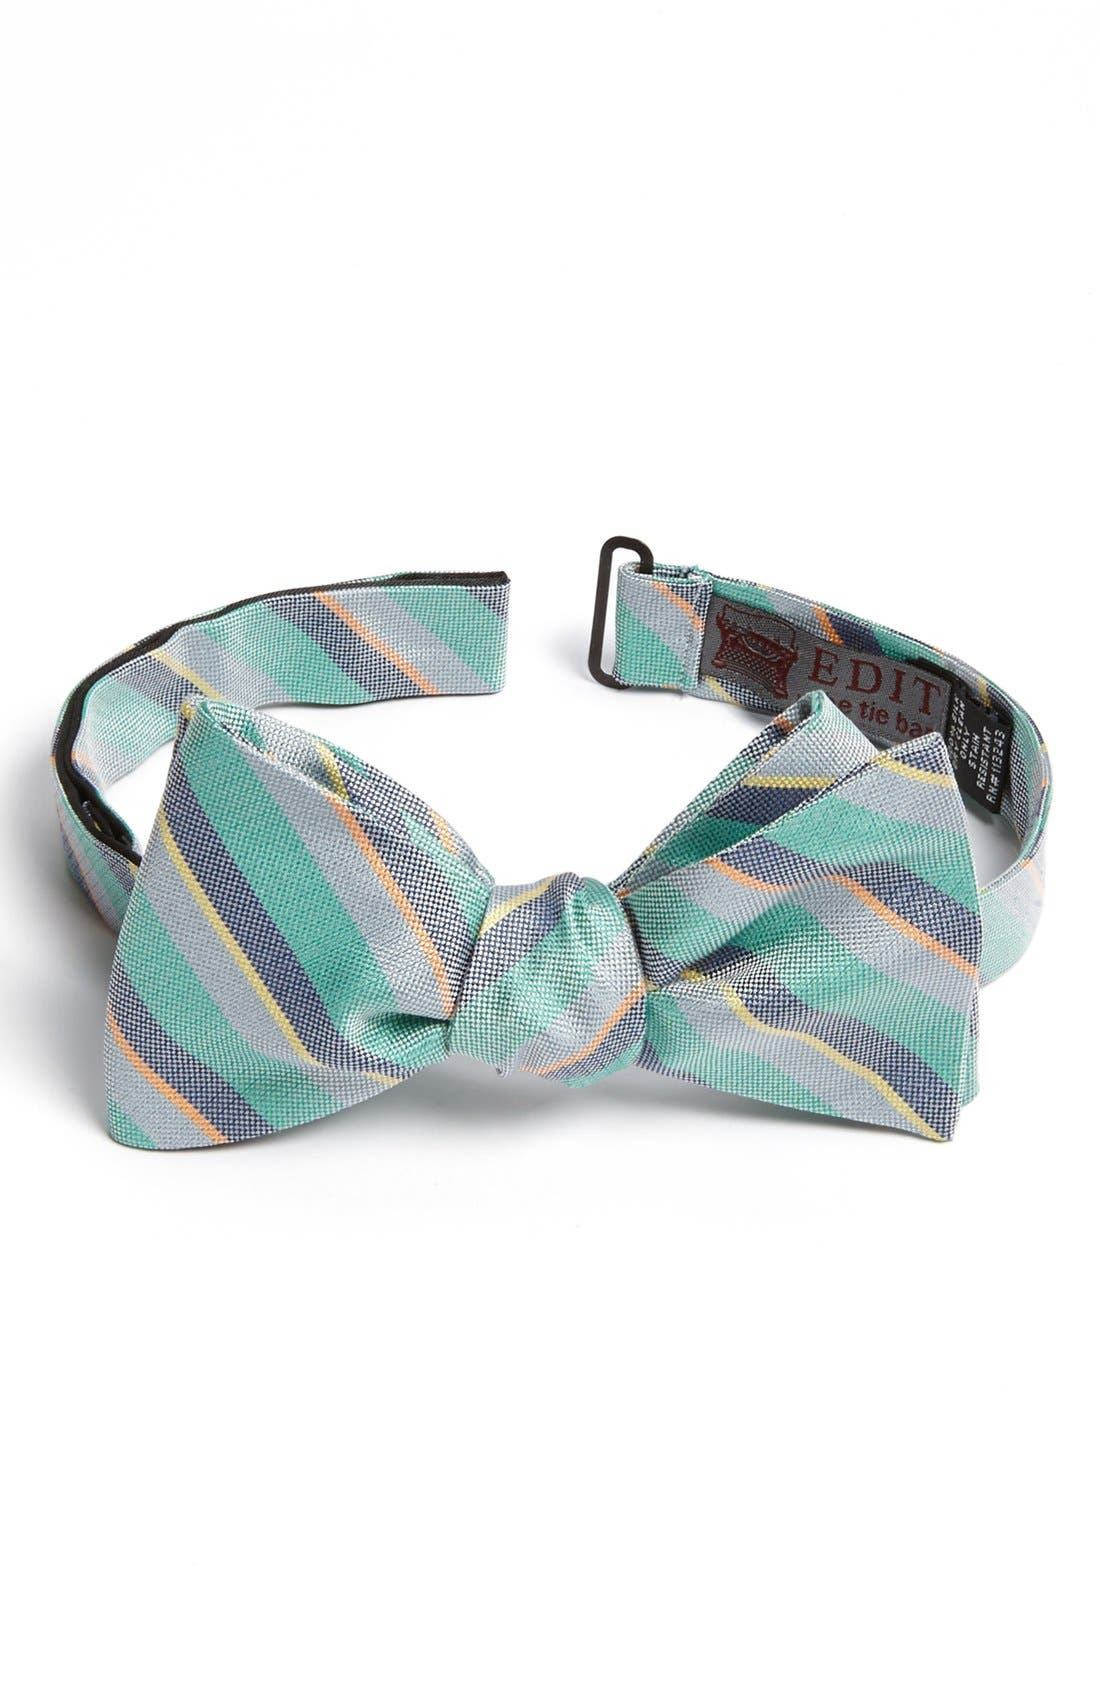 Alternate Image 1 Selected - EDIT by The Tie Bar Silk Bow Tie (Nordstrom Exclusive)